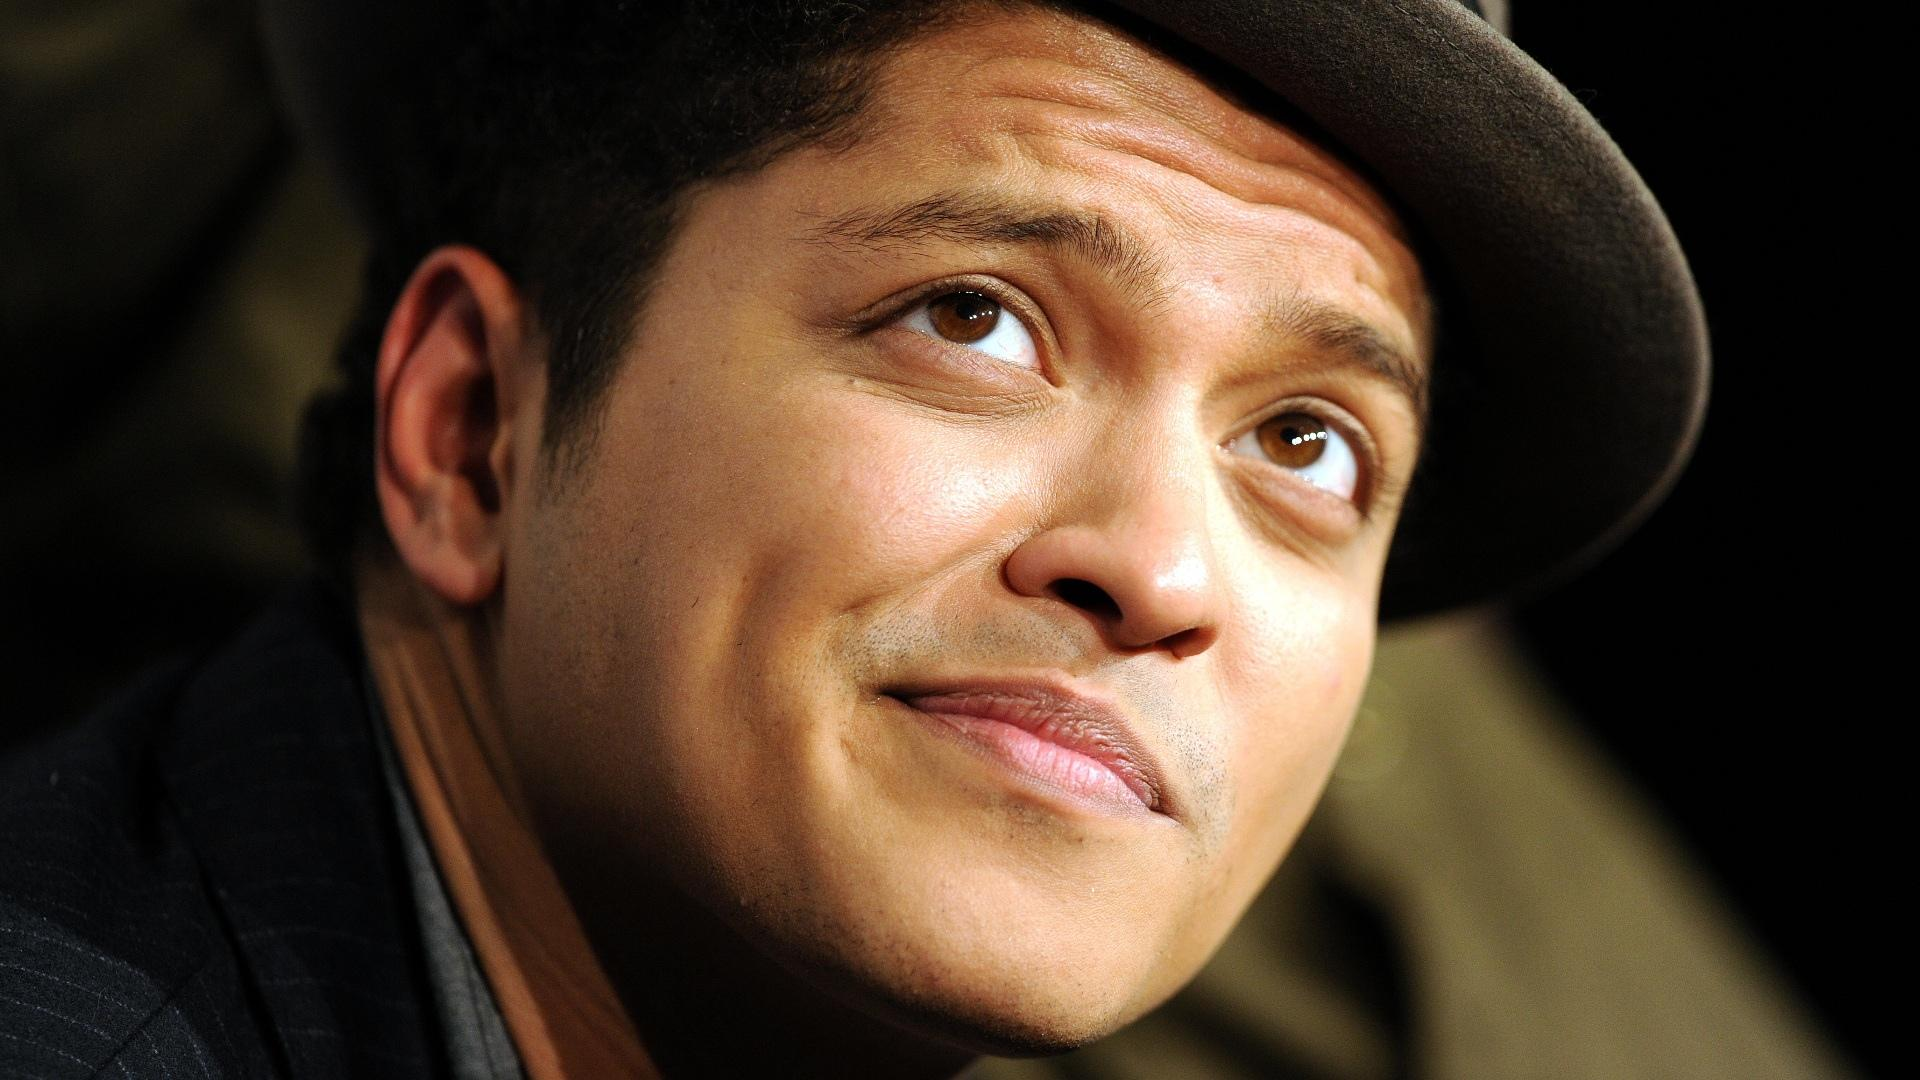 Bruno Mars Wallpaper HD Download